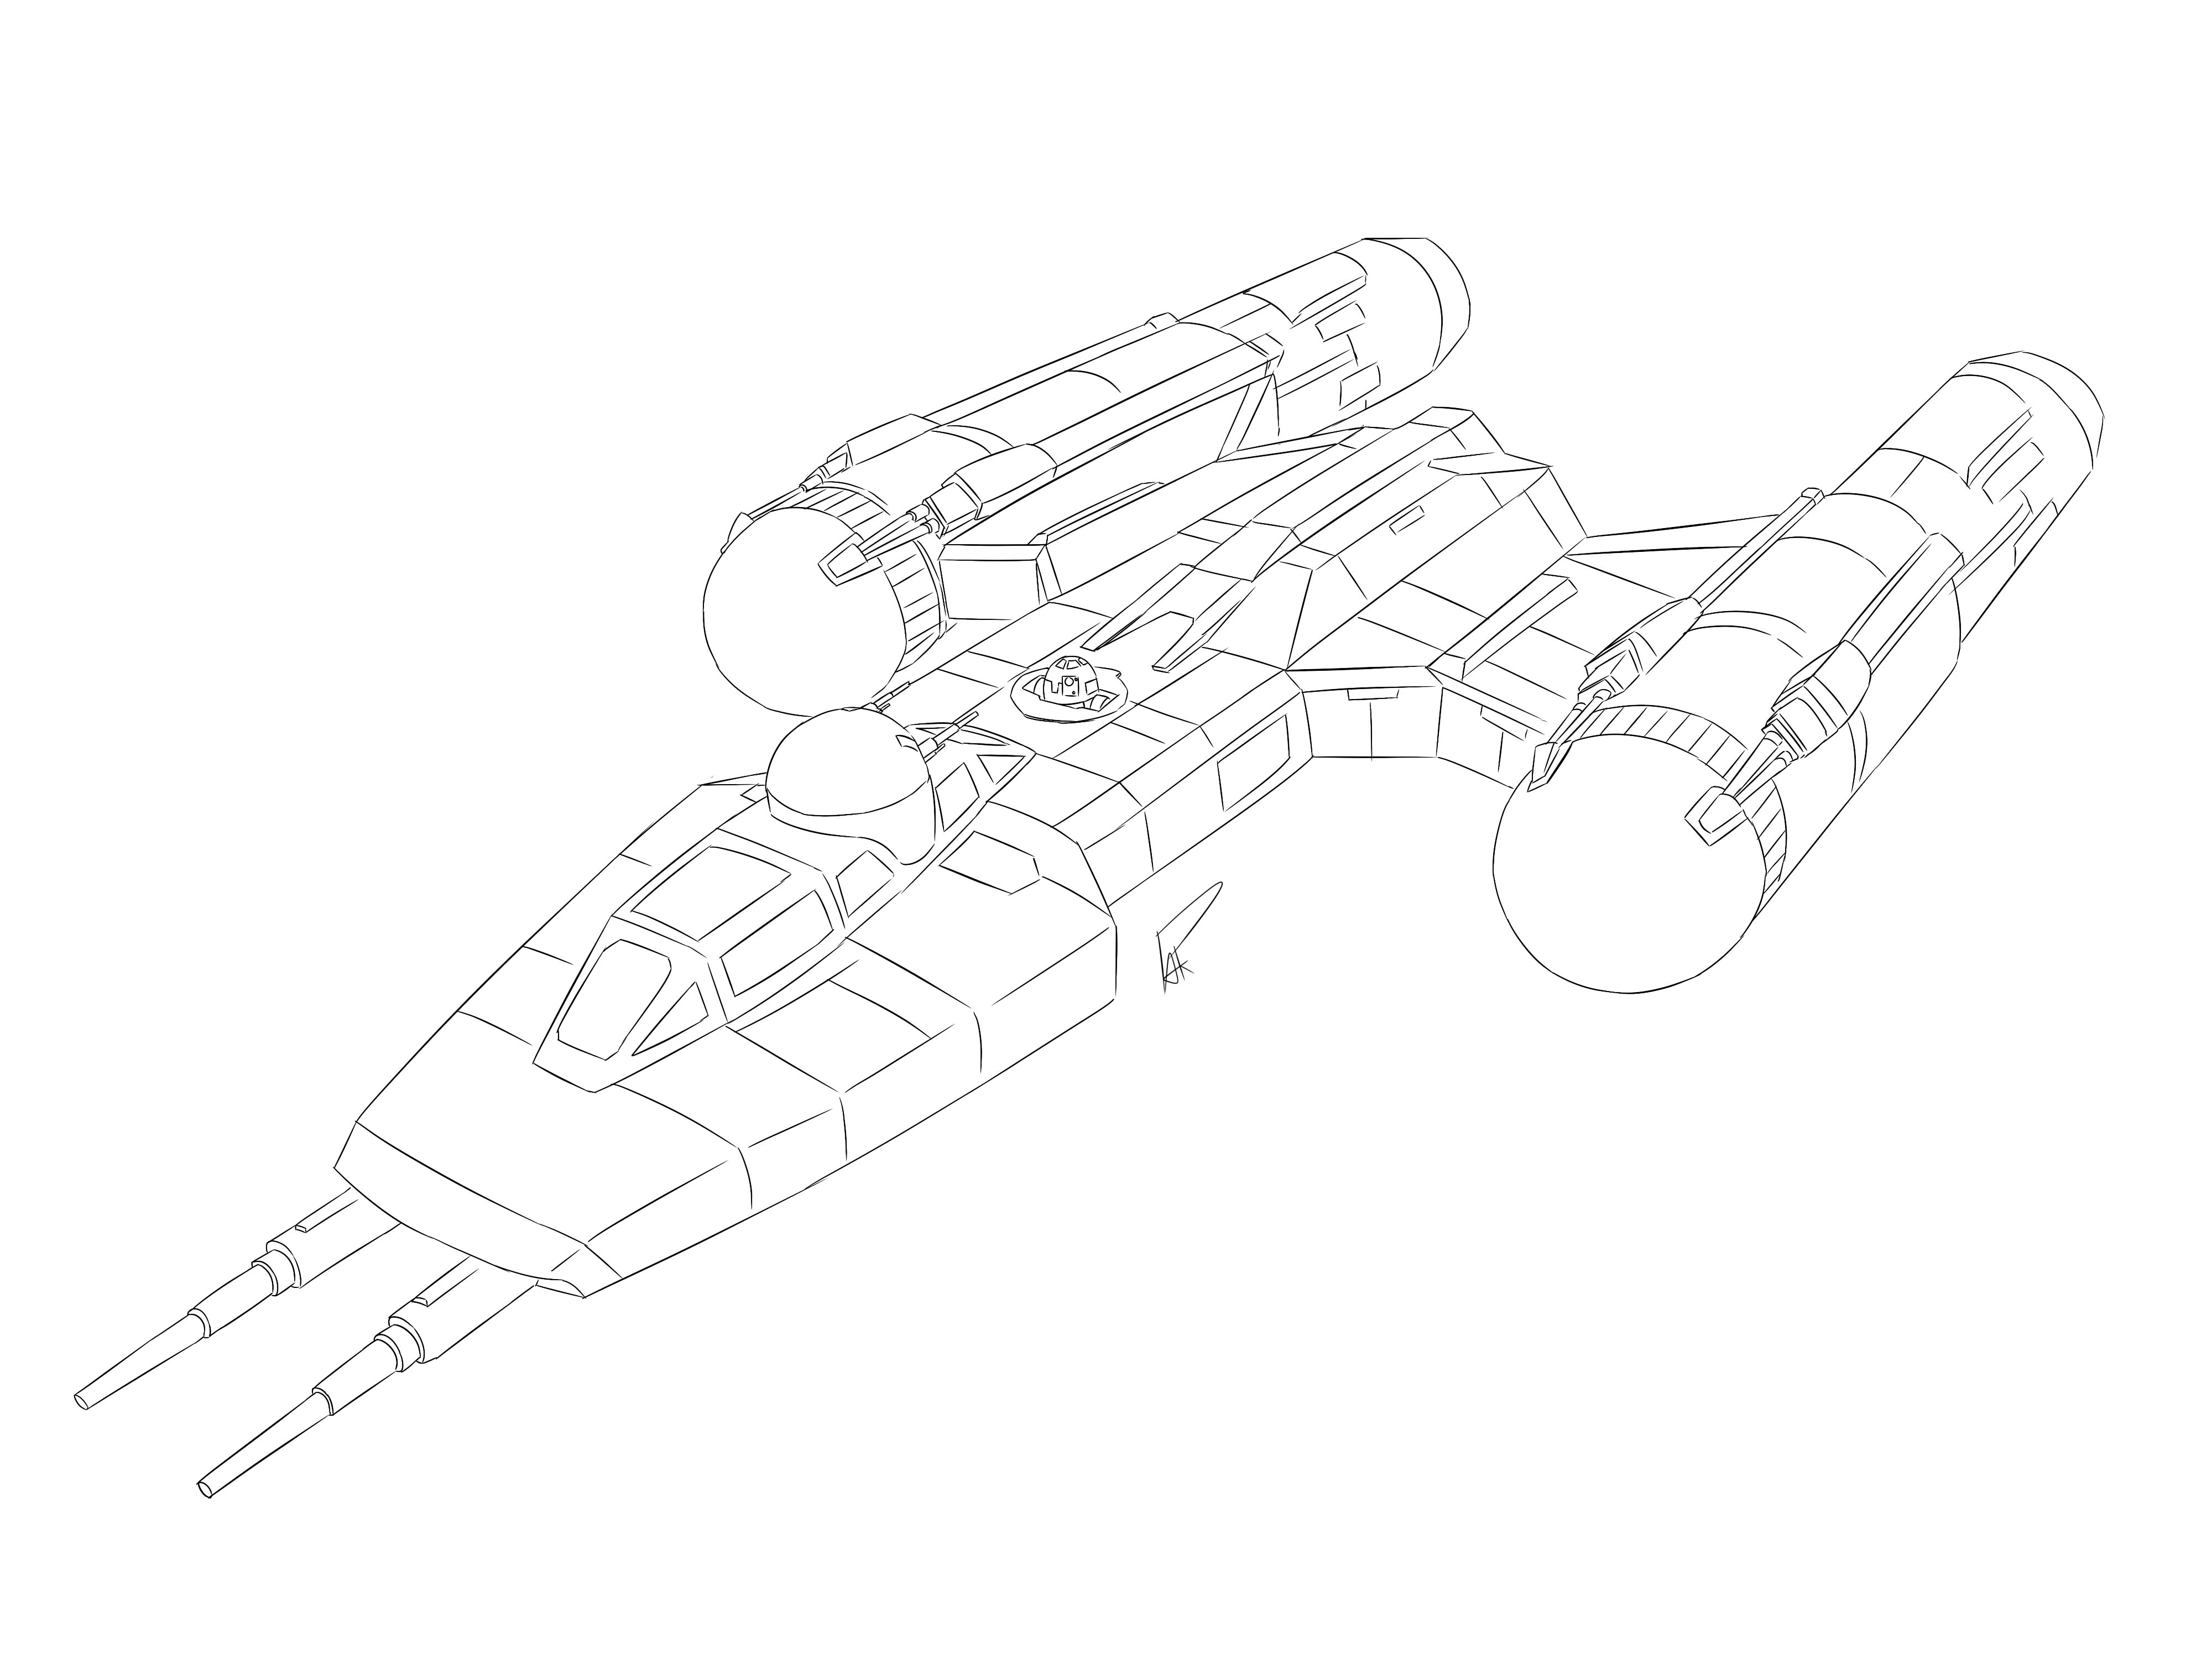 X Wing Line Drawing : The force awakens y wing by pak faace on deviantart